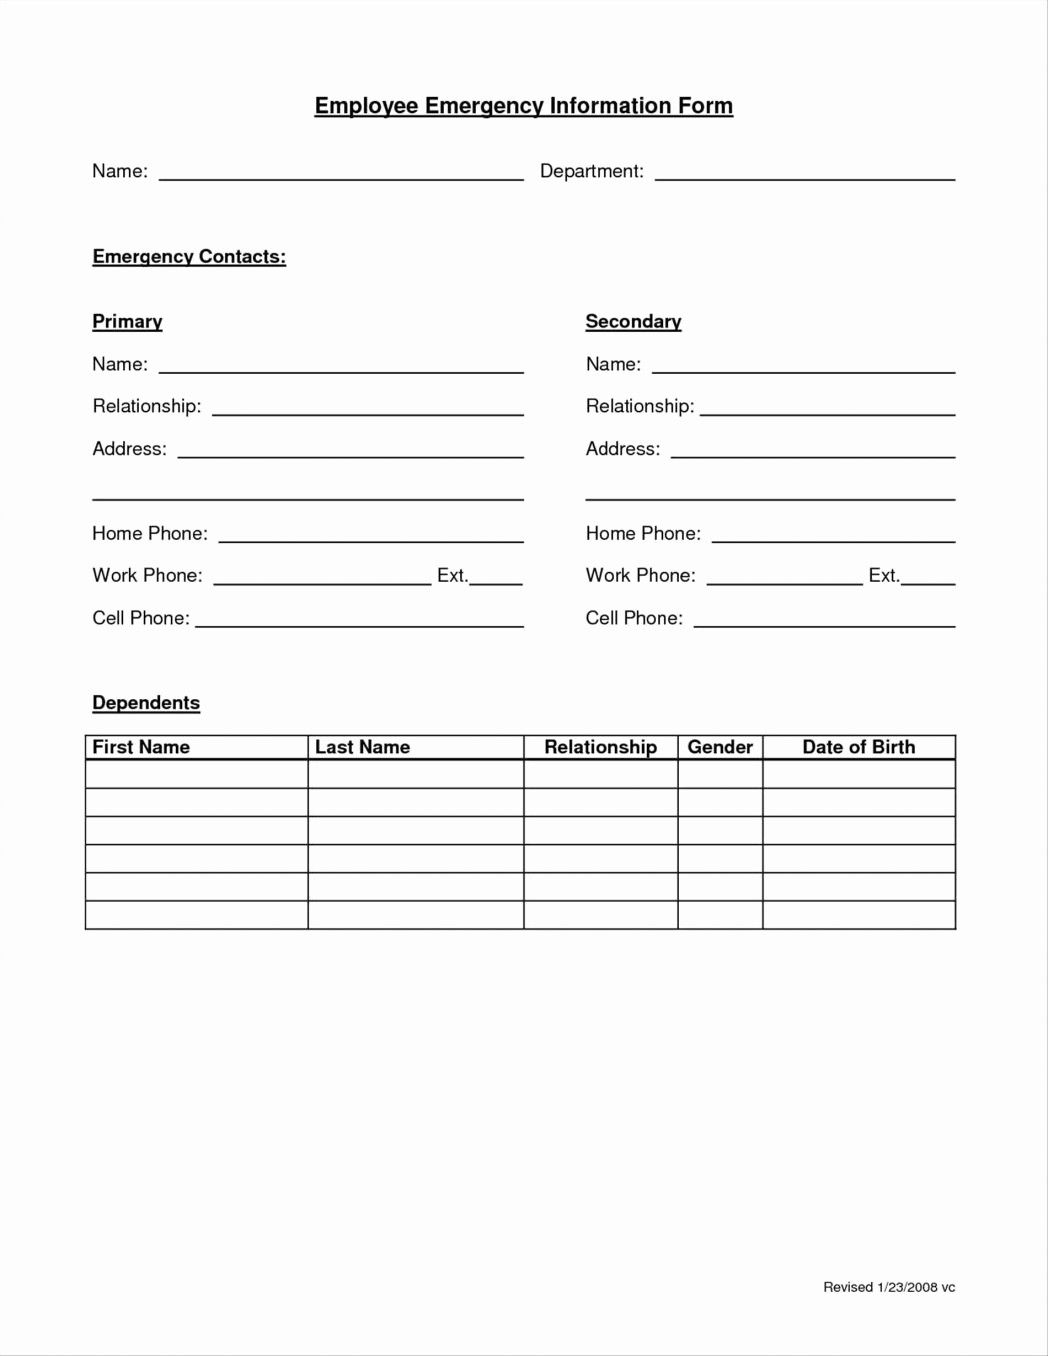 Google to Do List Template Luxury Sign Up Sheet App How to Create A Google form Do List